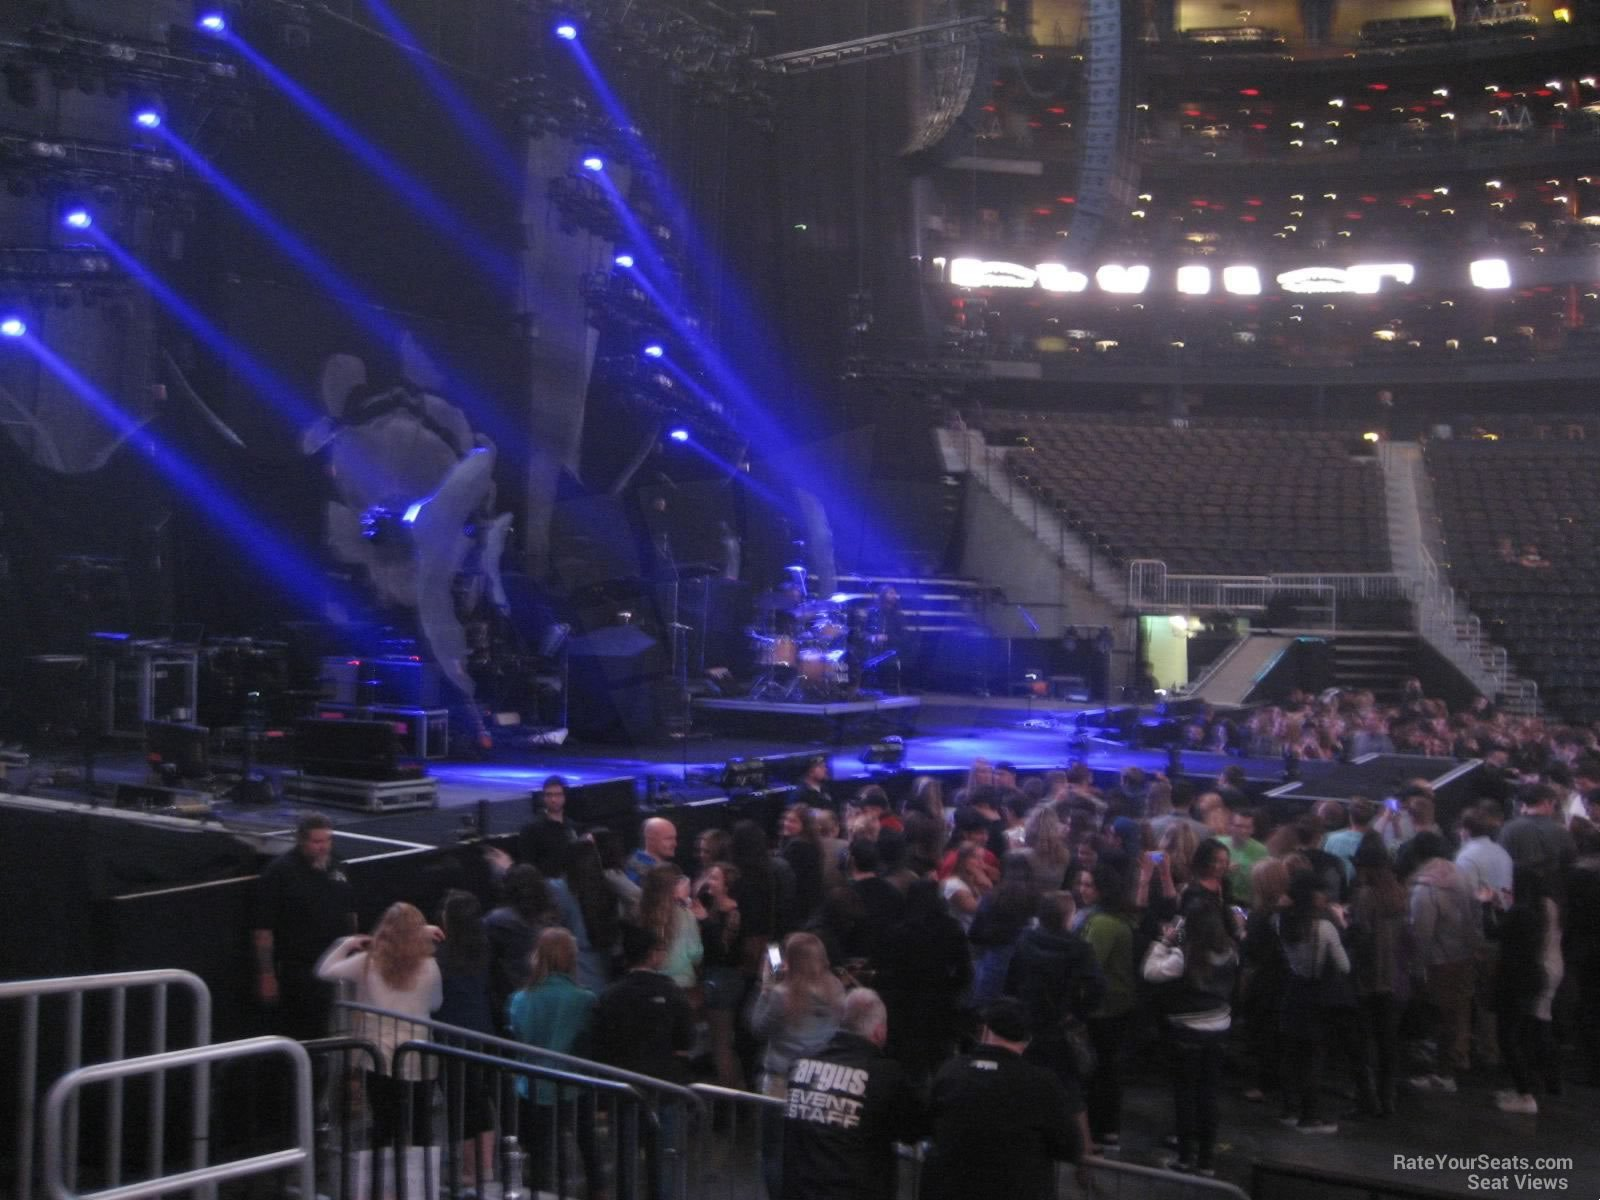 State farm arena section 121 concert seating rateyourseats com